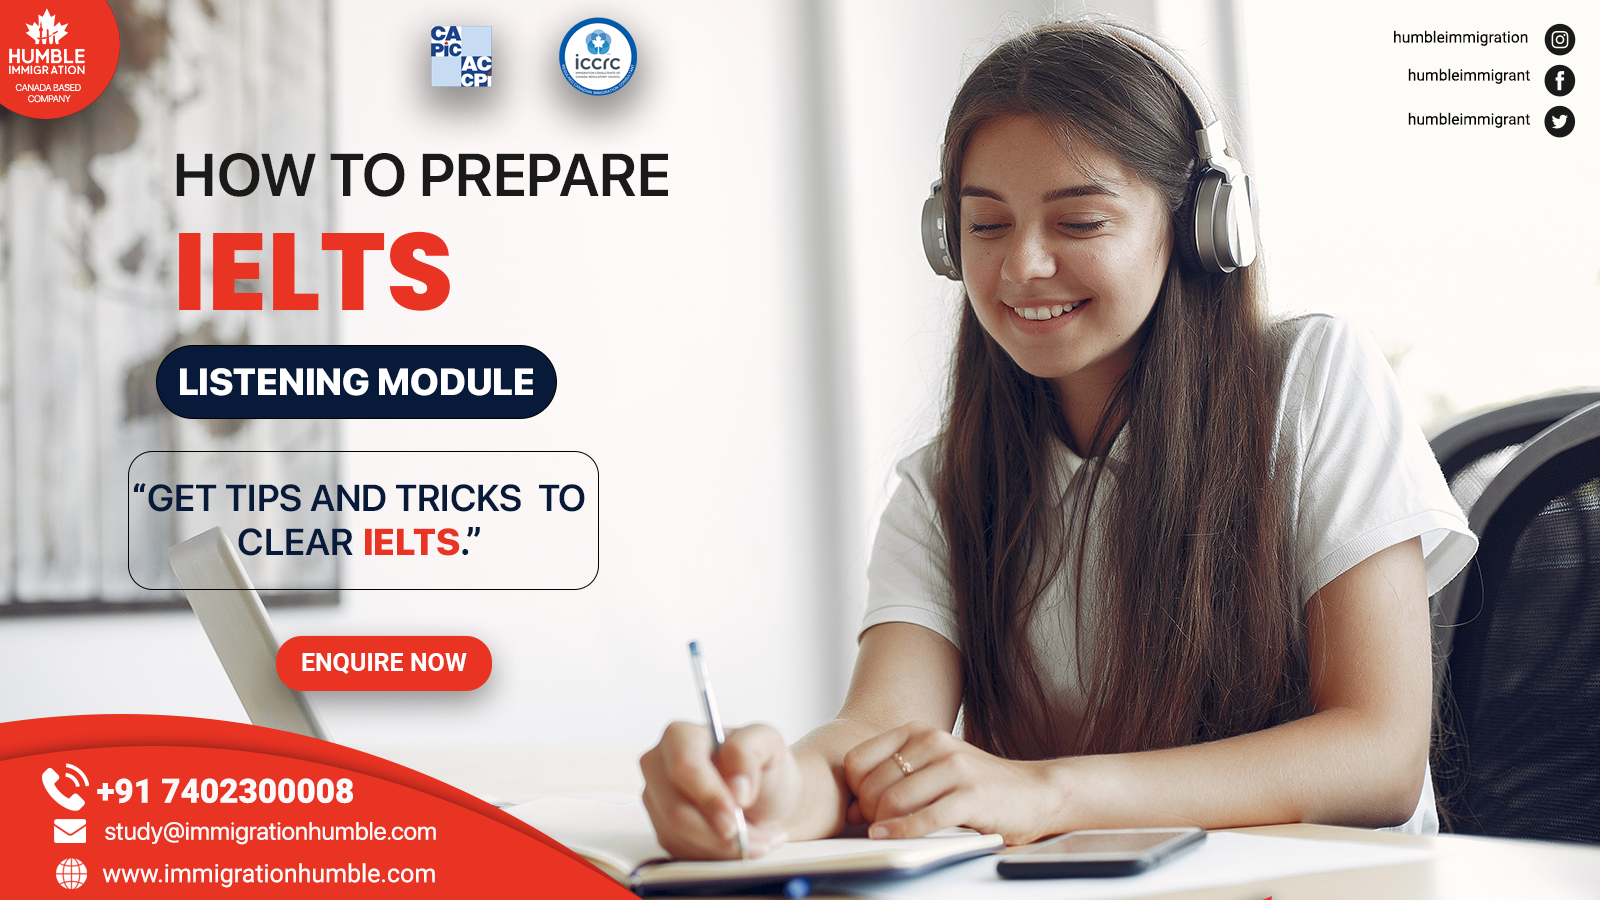 All you need to know about IELTS